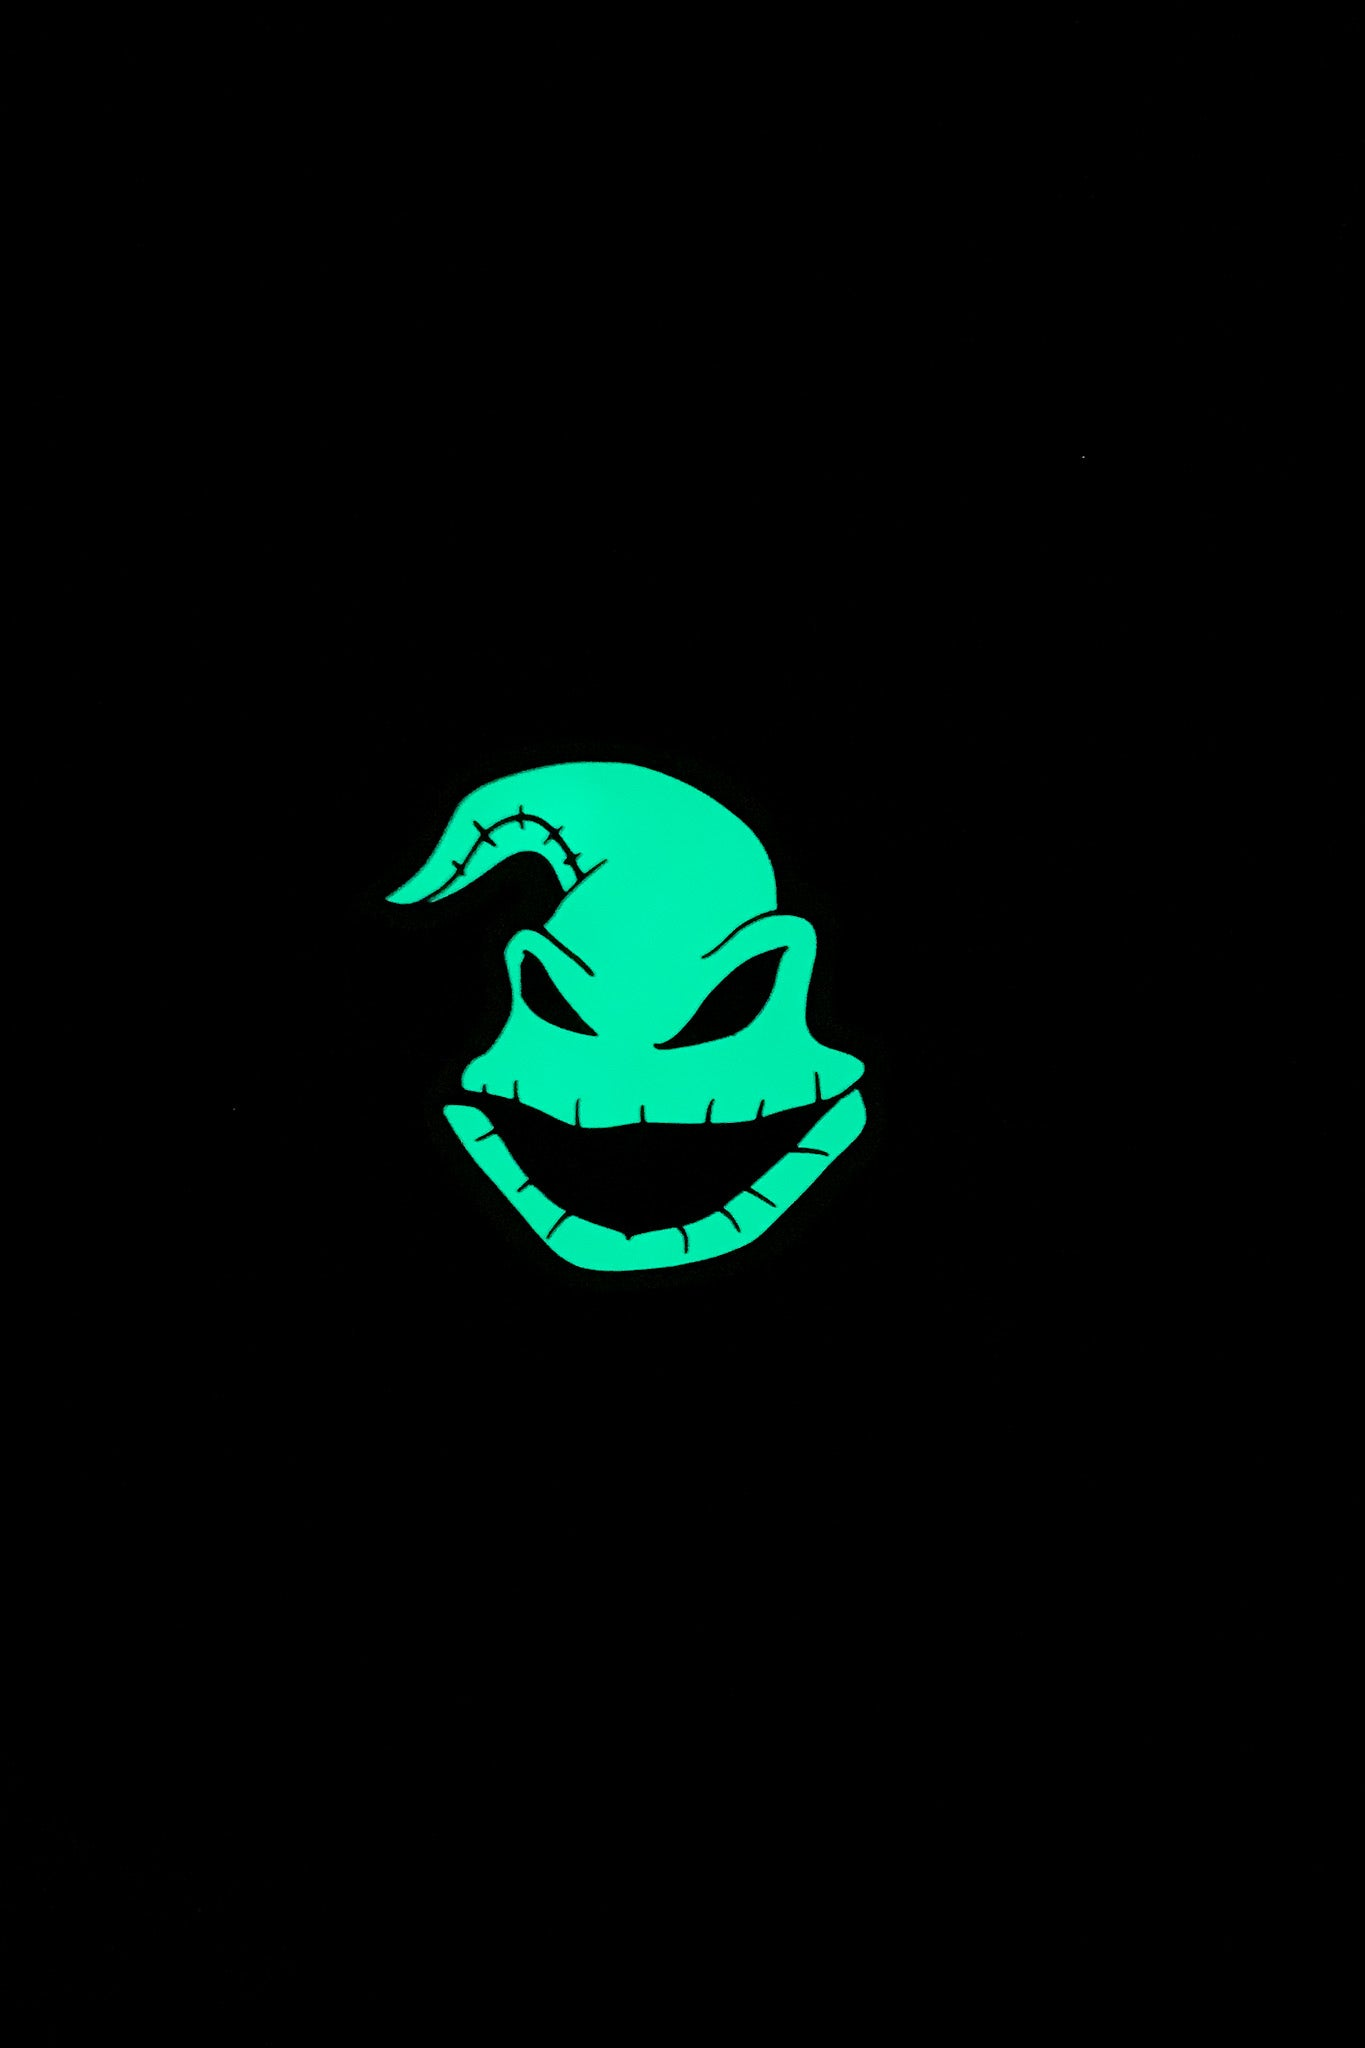 OOGIE BOOGIE—GLOW IN THE DARK